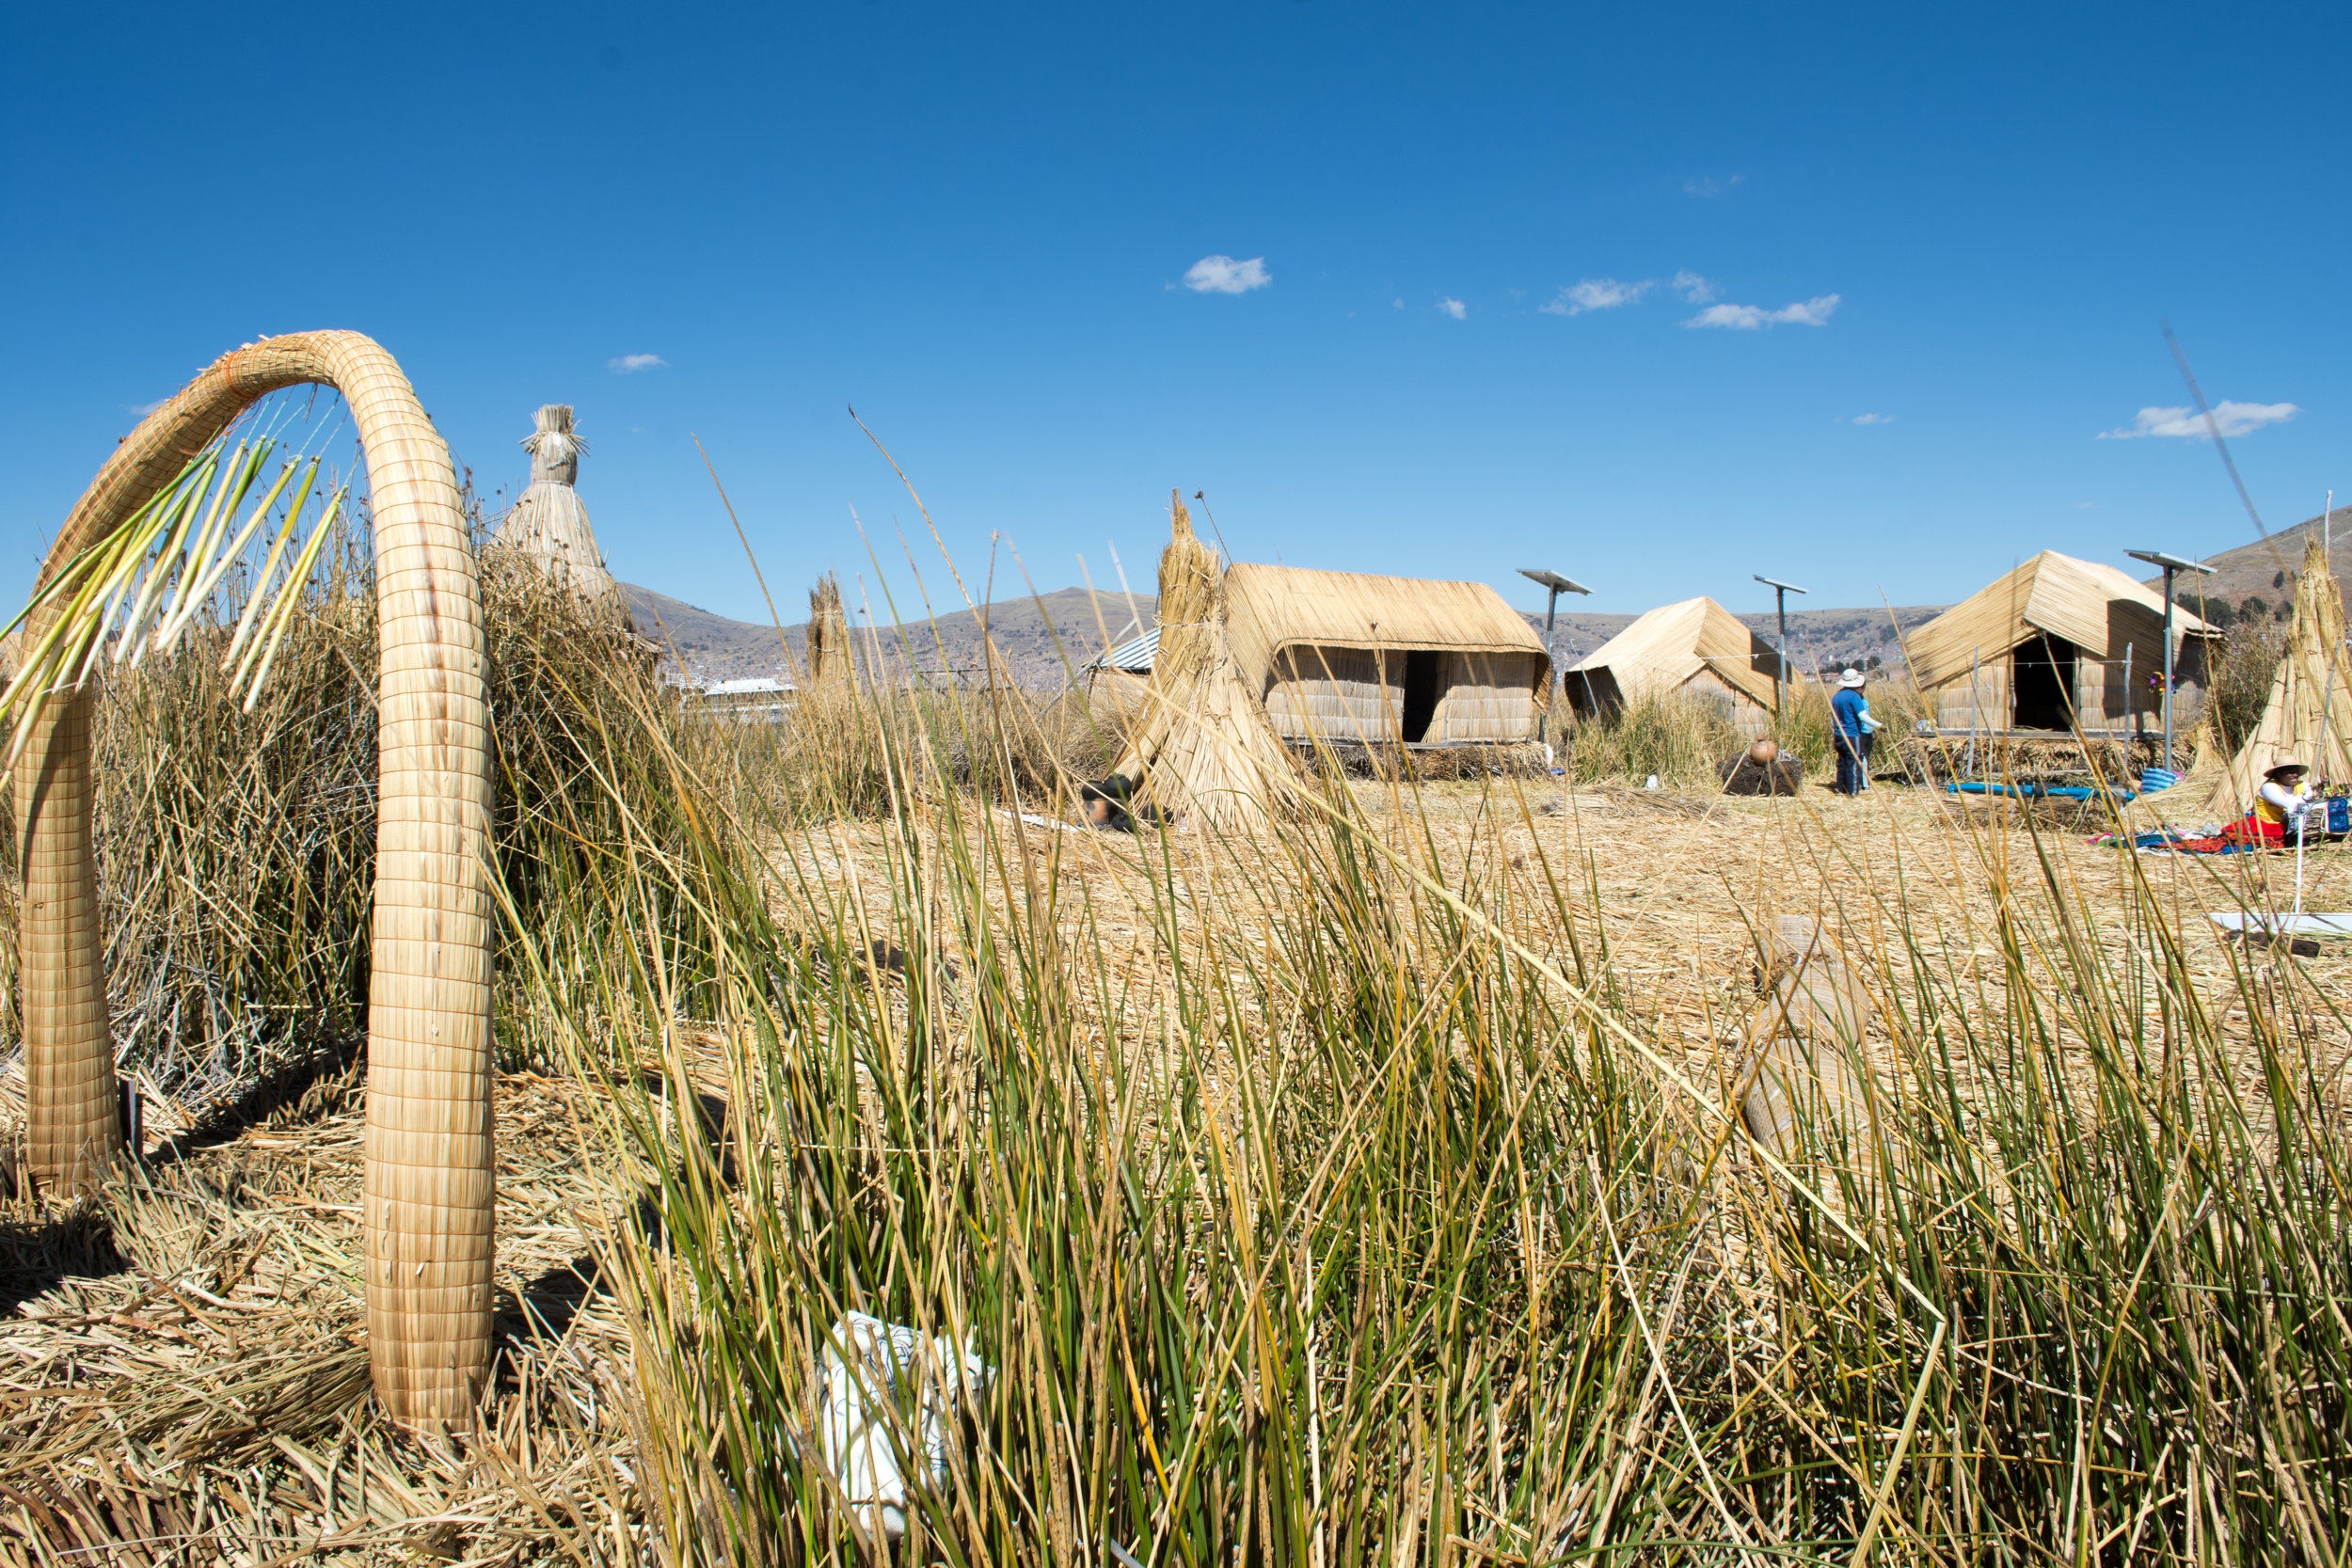 Uros Floating Islands on Lake Titicaca